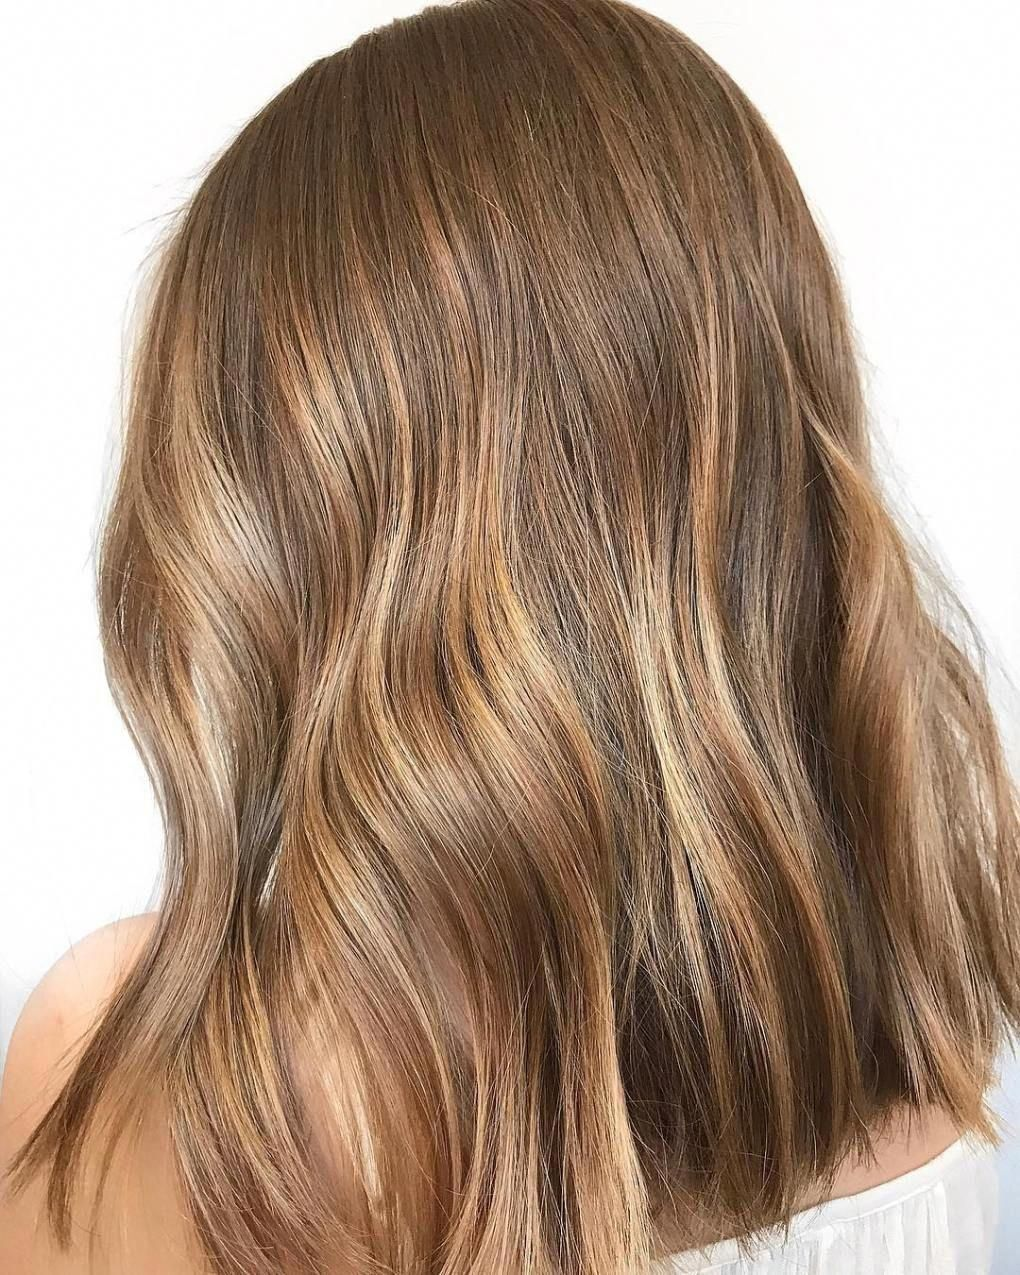 20 Golden Brown Hair Color Ideas All Brunettes Nee